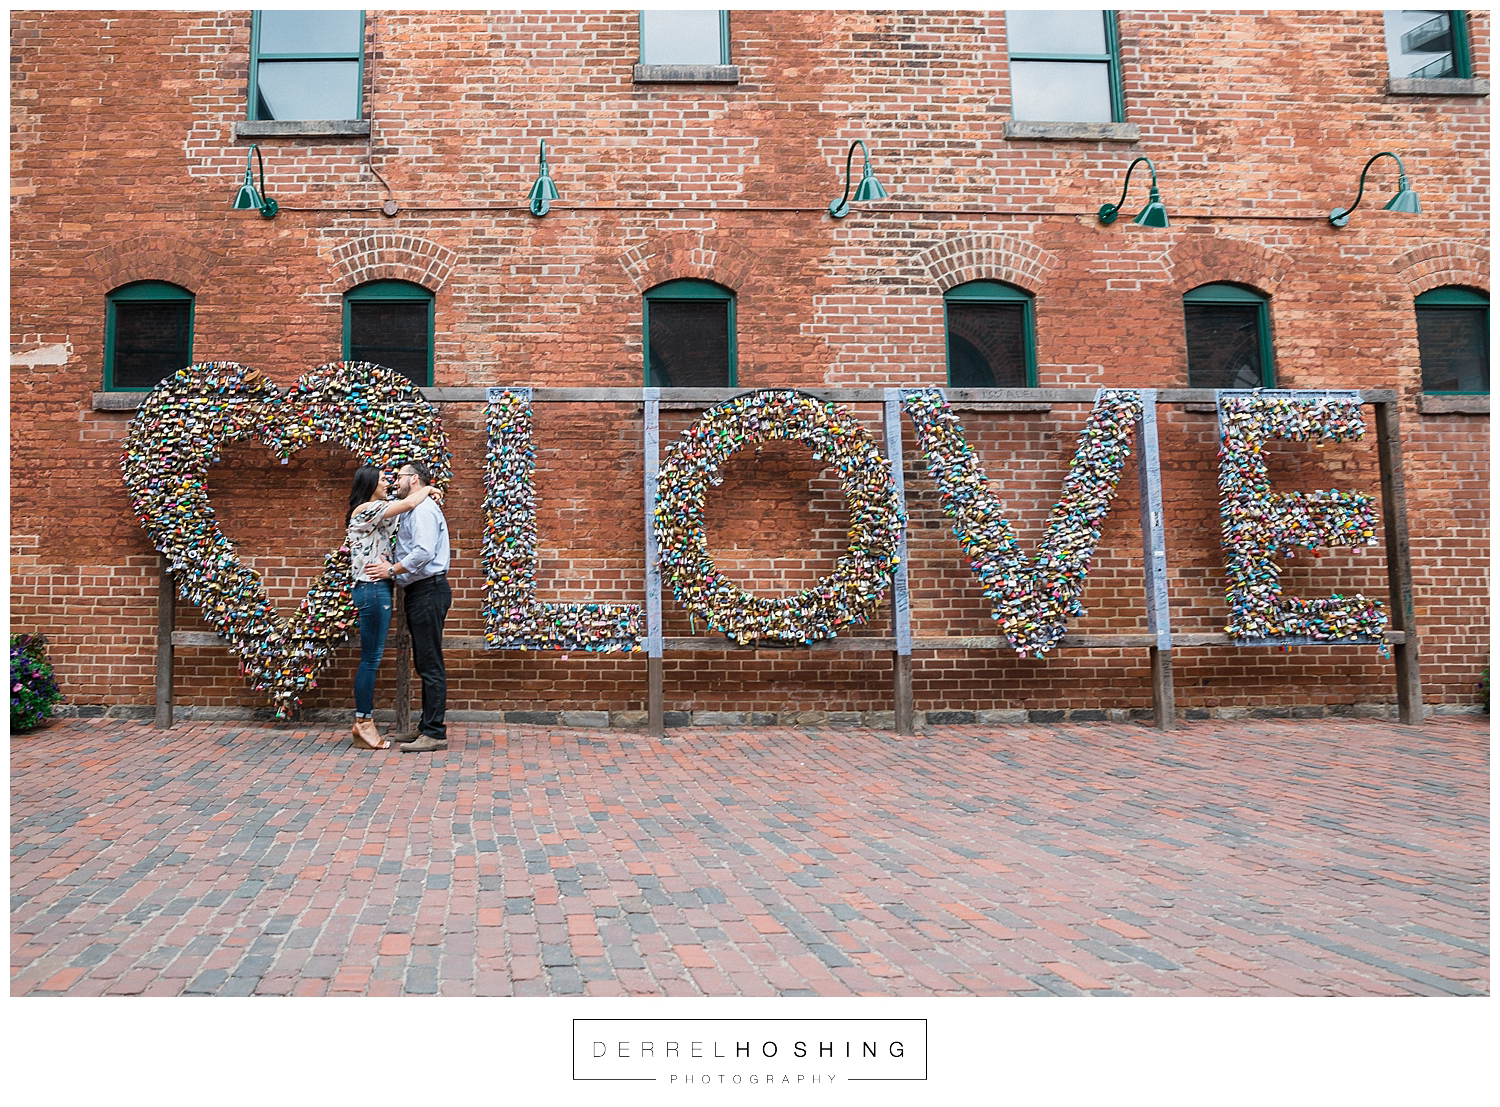 Distillery-District-Polson-Pier-Toronto-Engagement-Shoot-Wedding-Photographer-0002.jpg